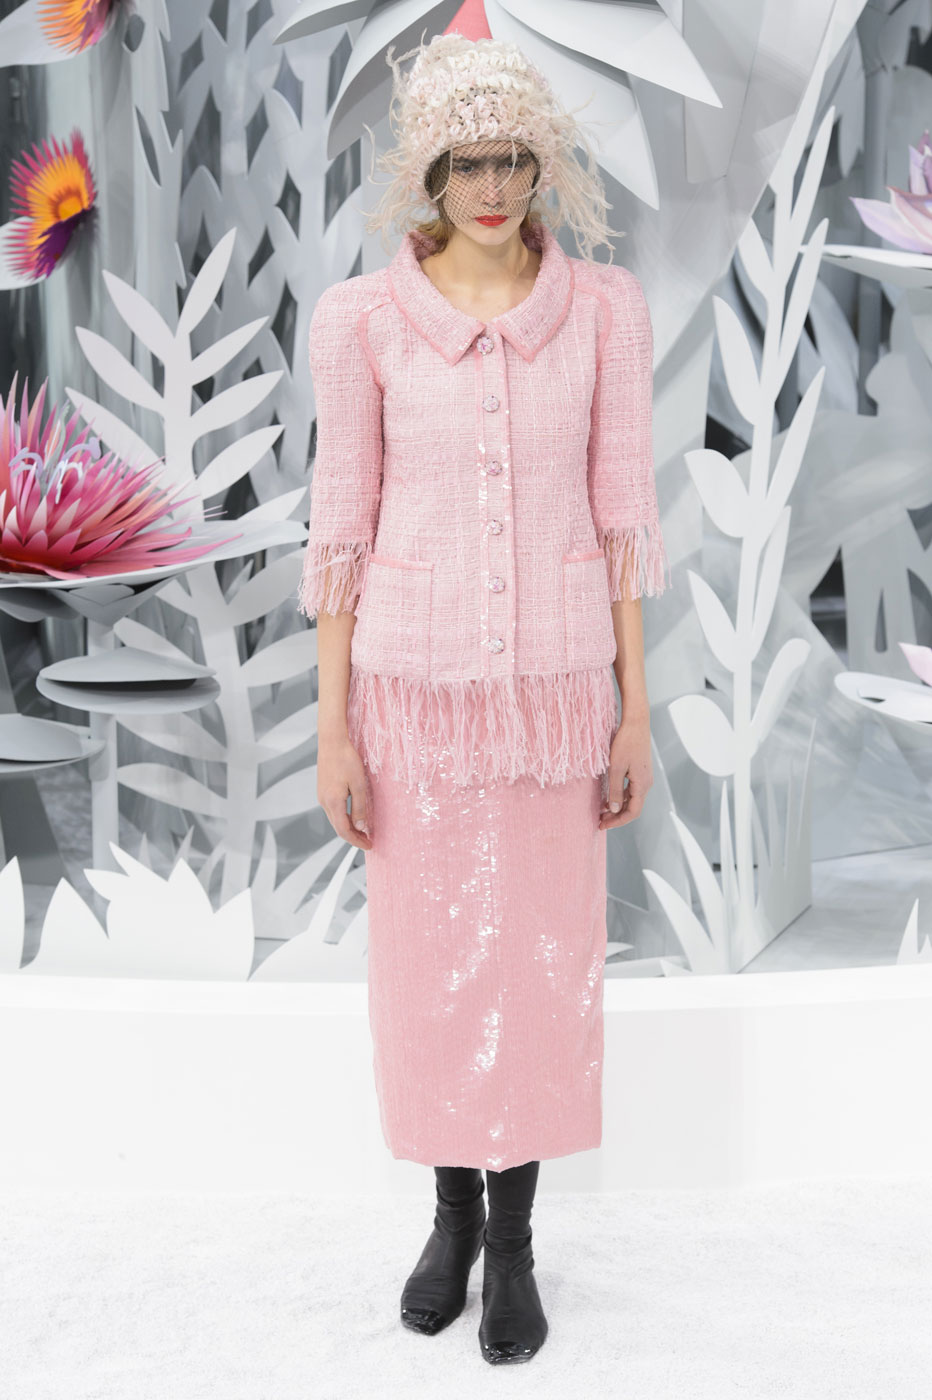 Chanel-fashion-runway-show-haute-couture-paris-spring-summer-2015-the-impression-071